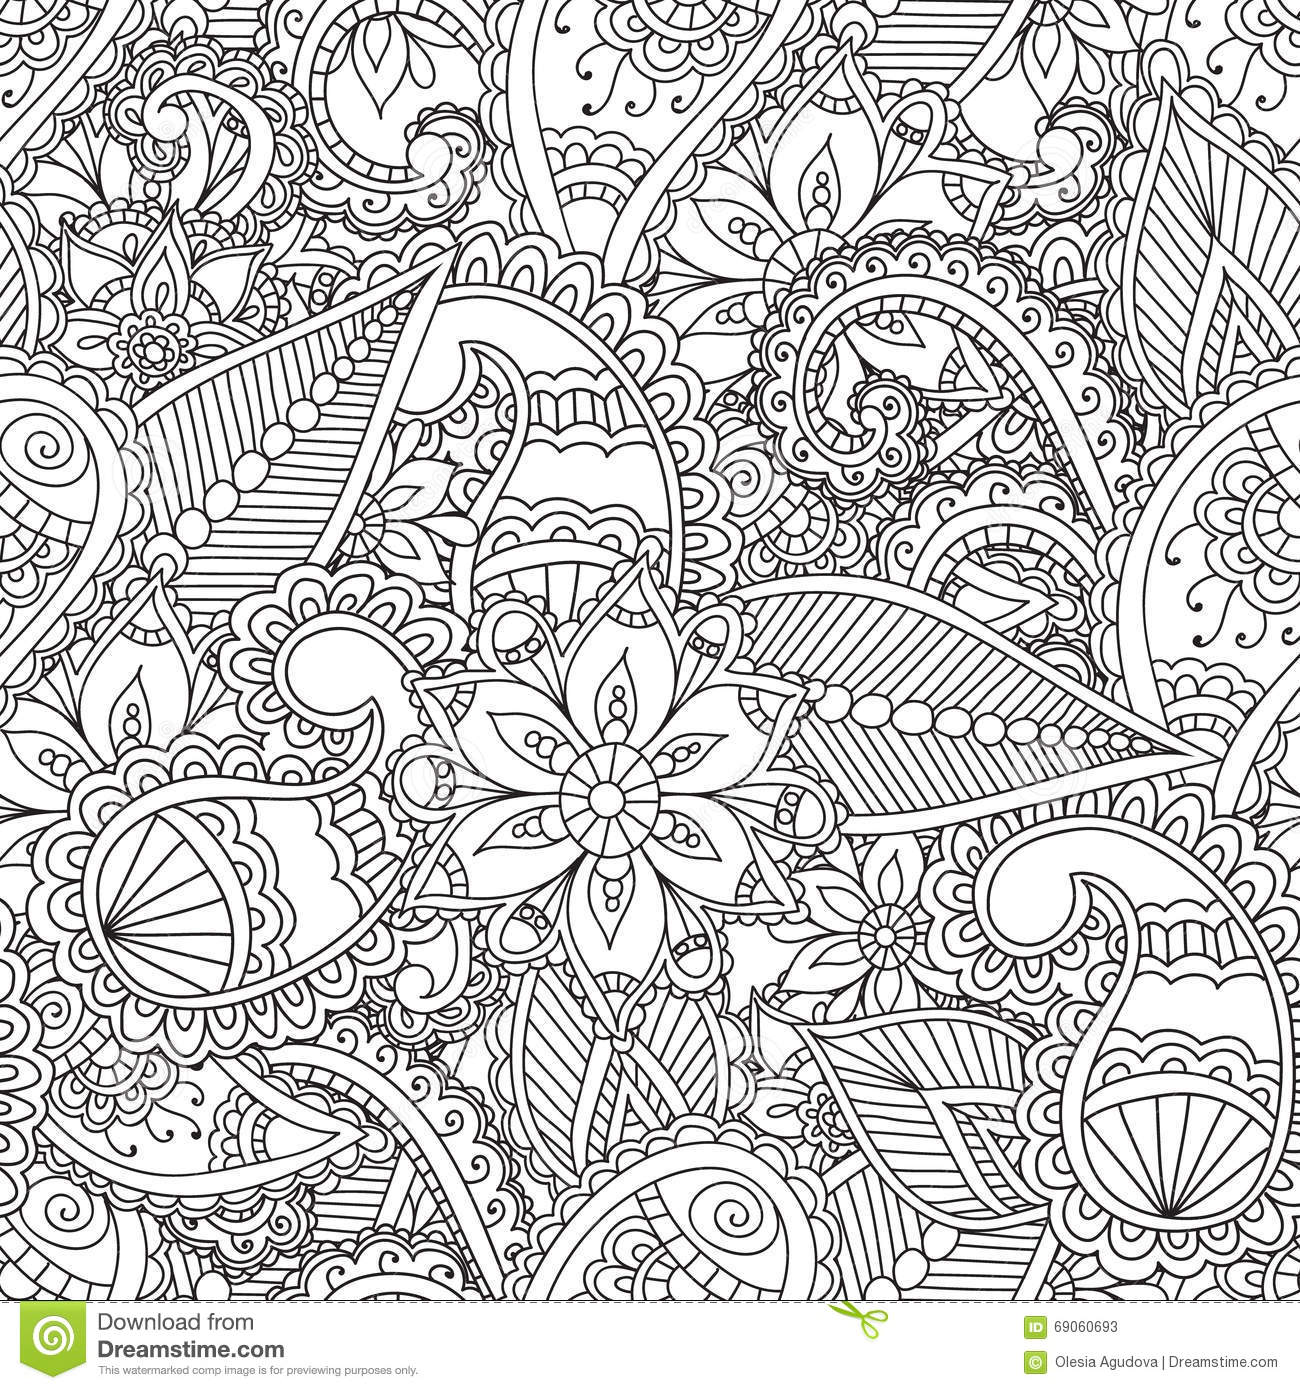 Coloring Pages Adults Seamless Pattern Henna Mehndi Doodles